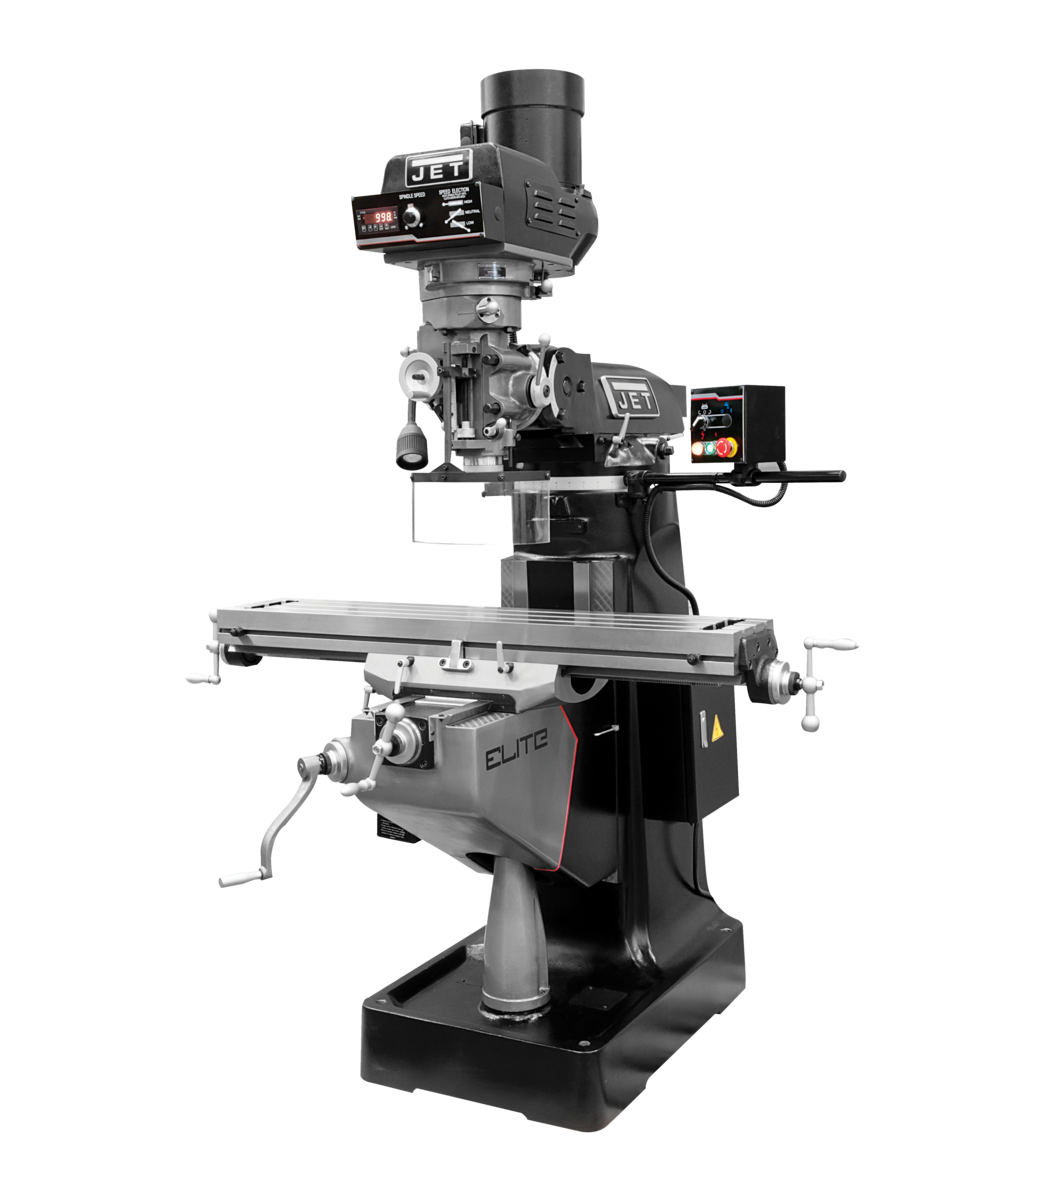 EVS-949 Mill with 3-Axis ACU-RITE 203 (Knee) DRO and Servo X-Axis Powerfeed and USA Air Powered Draw Bar